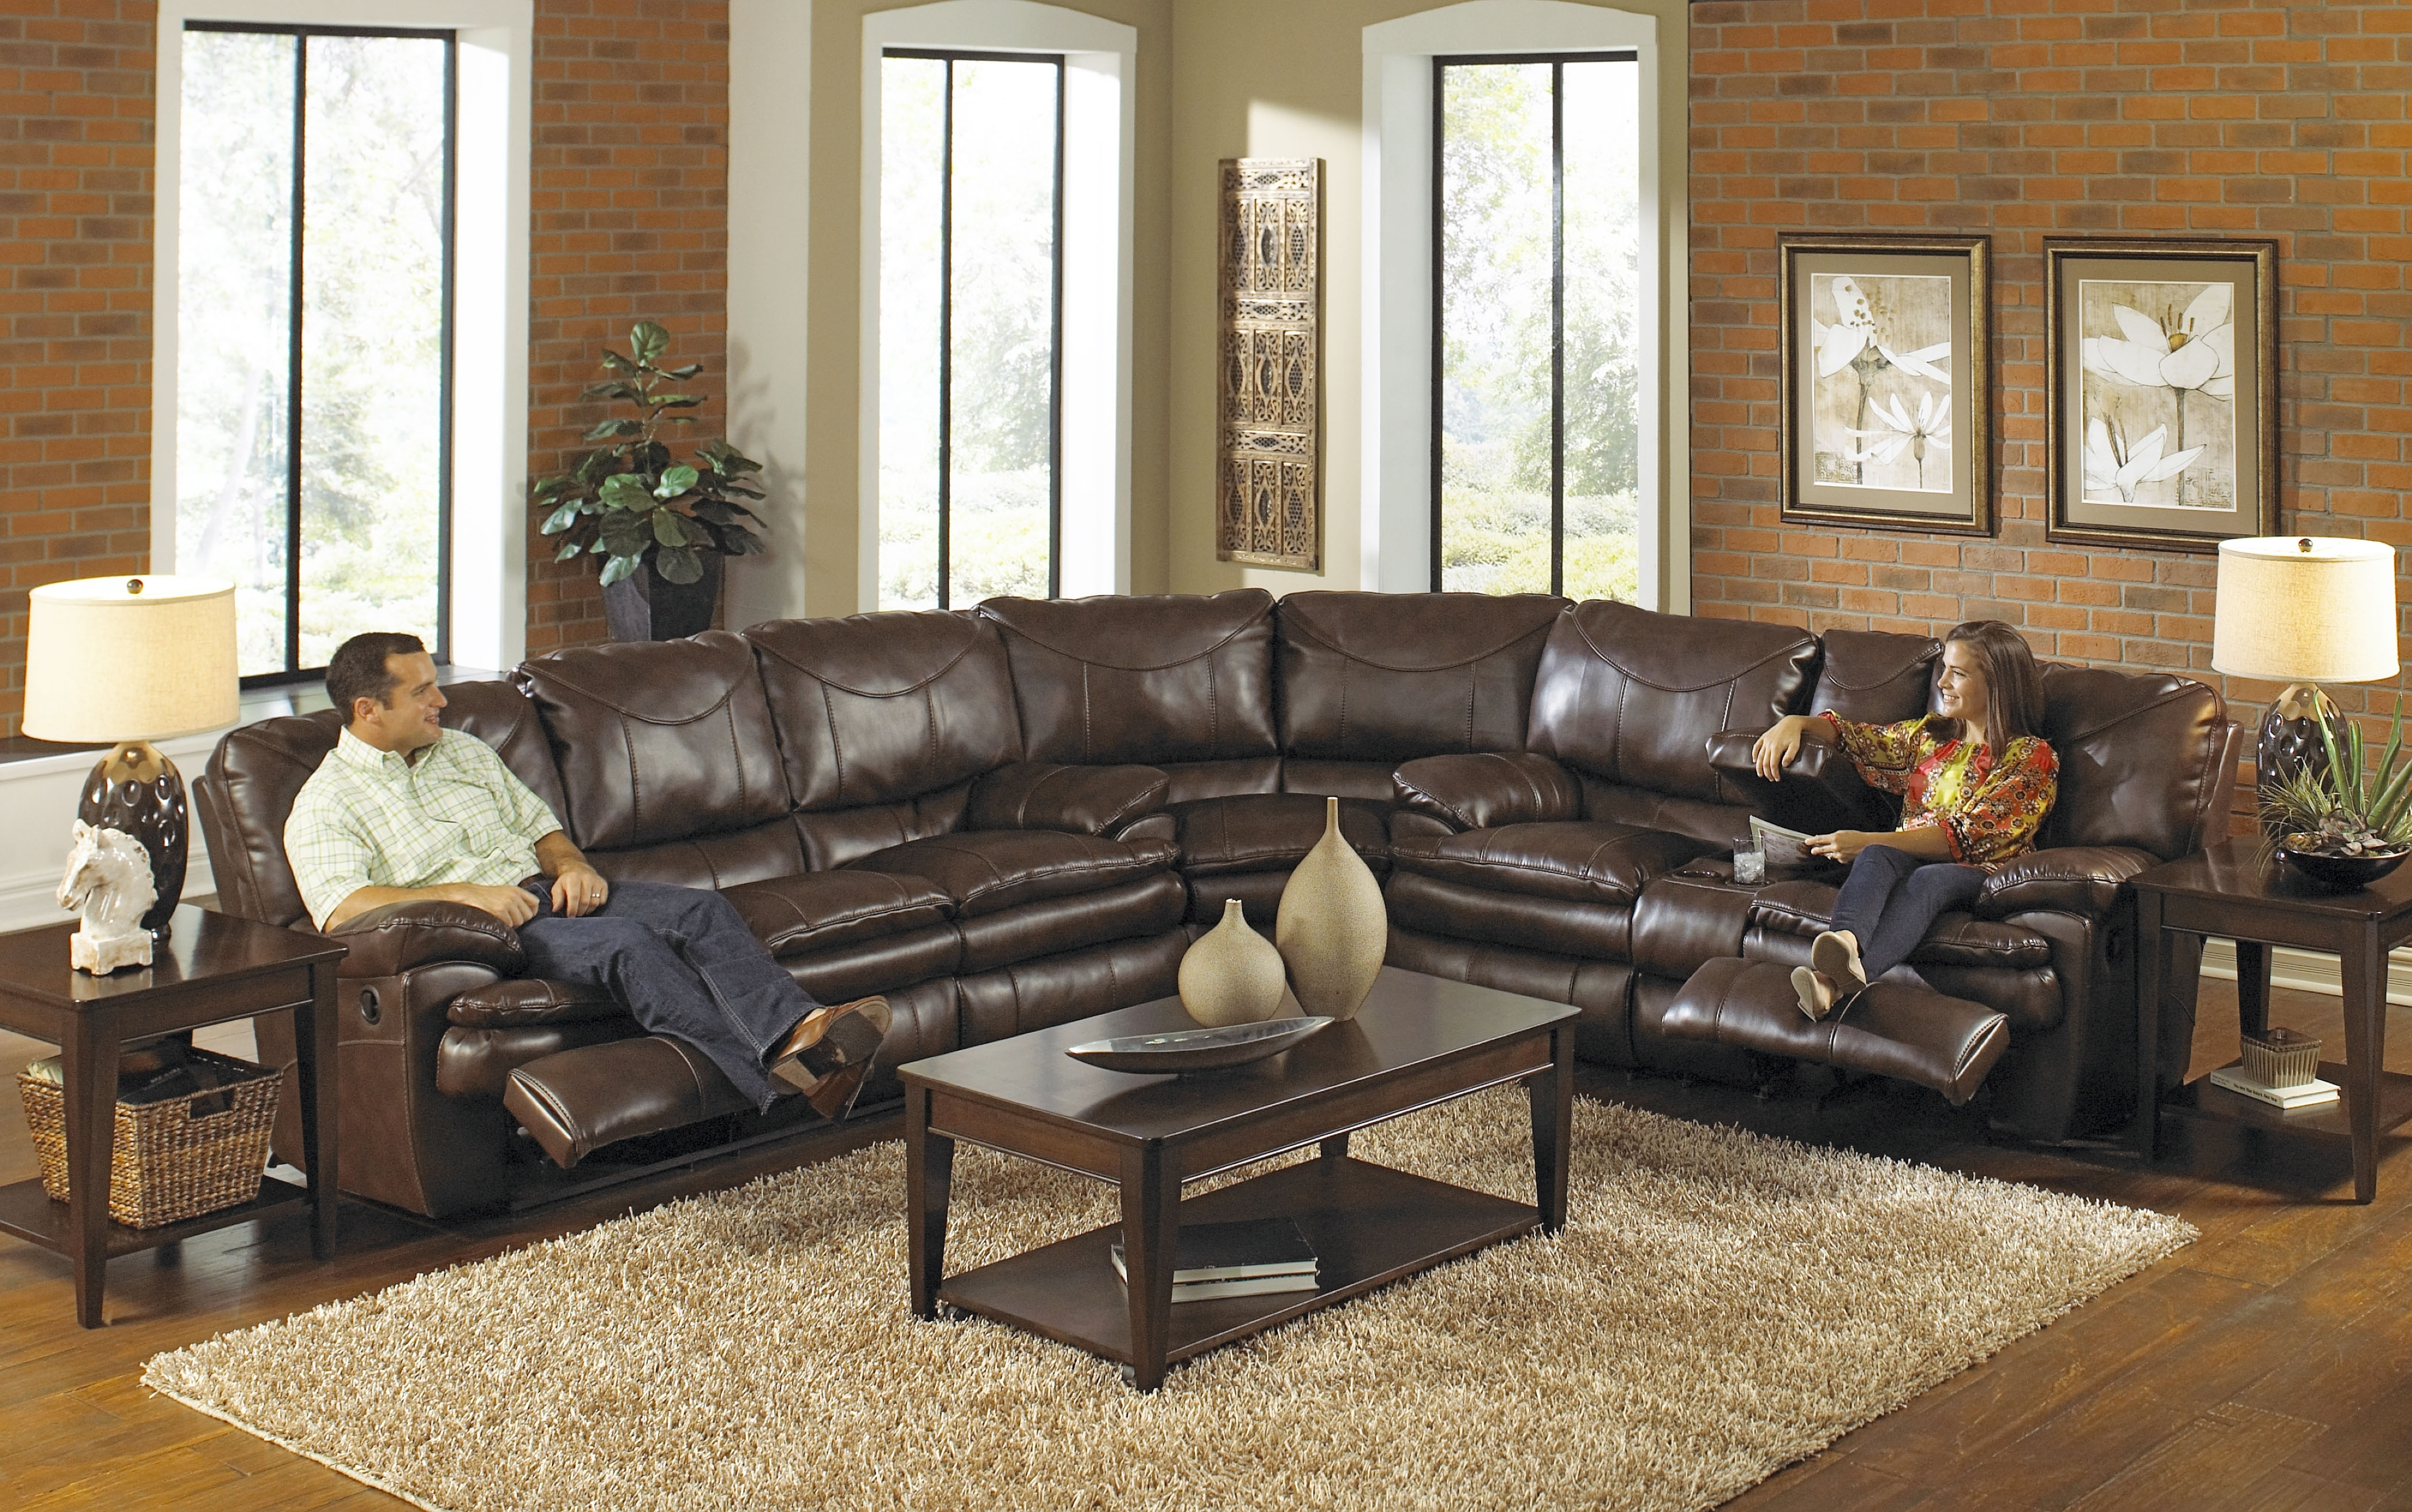 An Overview Of Sectional Sofas With Recliner – Elites Home Decor Regarding Reclining Sectional Sofas (Image 2 of 10)